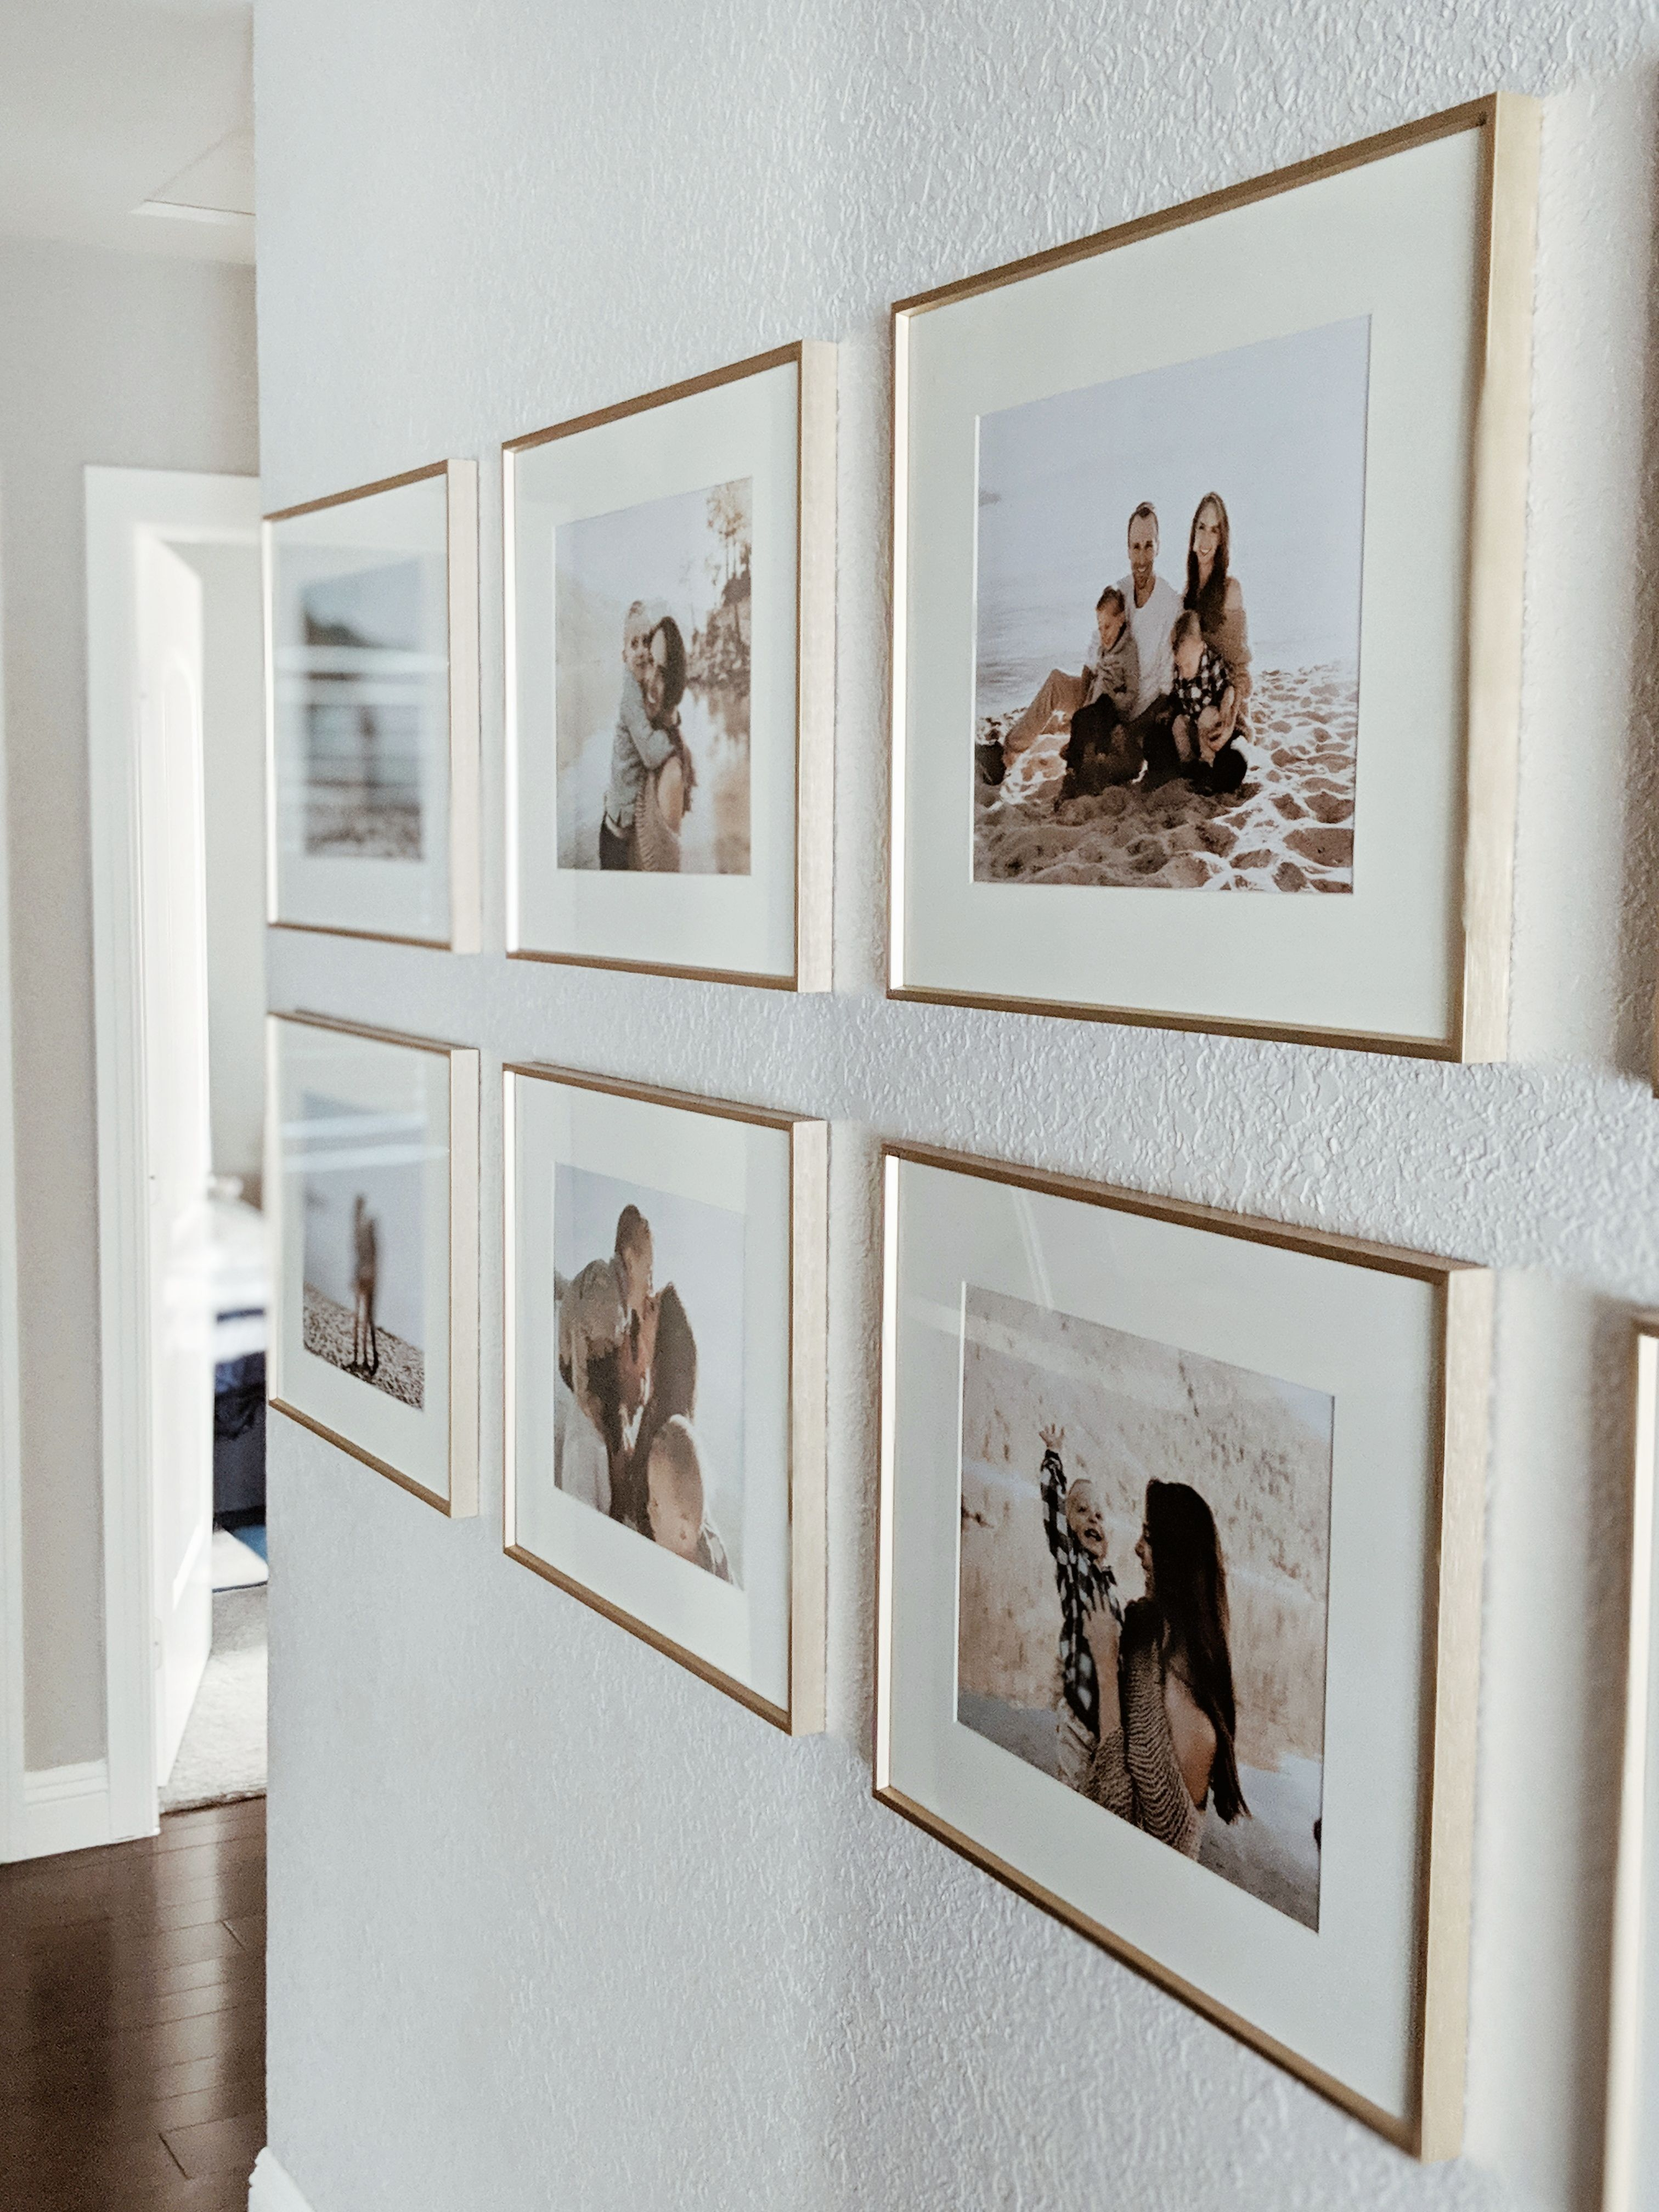 Get this sleek, minimal, and modern looking gallery wall all from Amazon. Affordable frames that look like they were custom made. These budget-friendly frames can dress up and decorate any large wall in your house. They make for a beautiful and uniformed looking gallery wall when paired with one another.